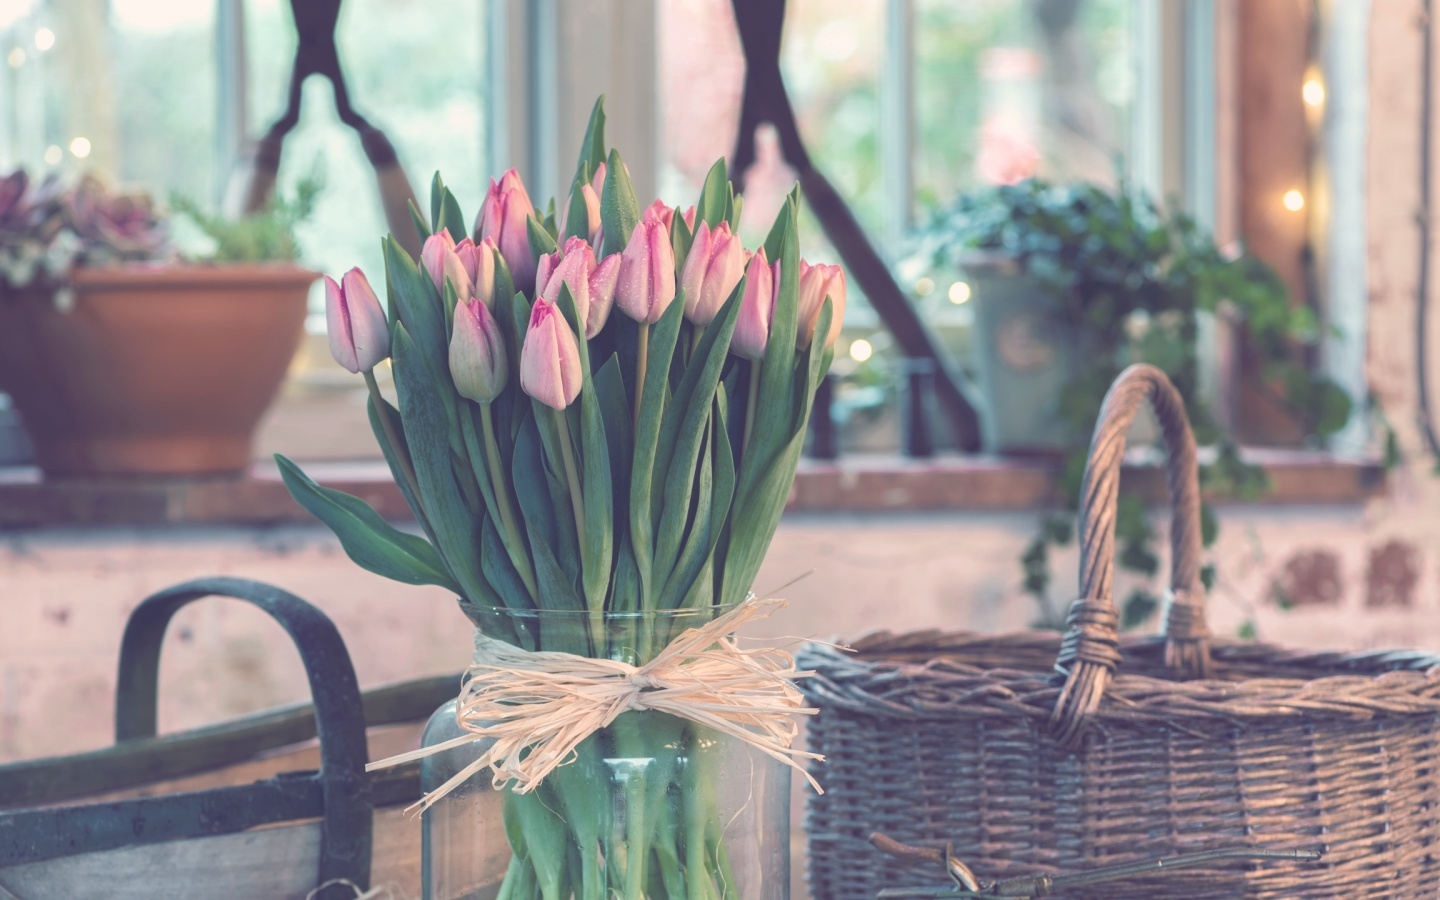 1440x900 tulips_bouquet_vase